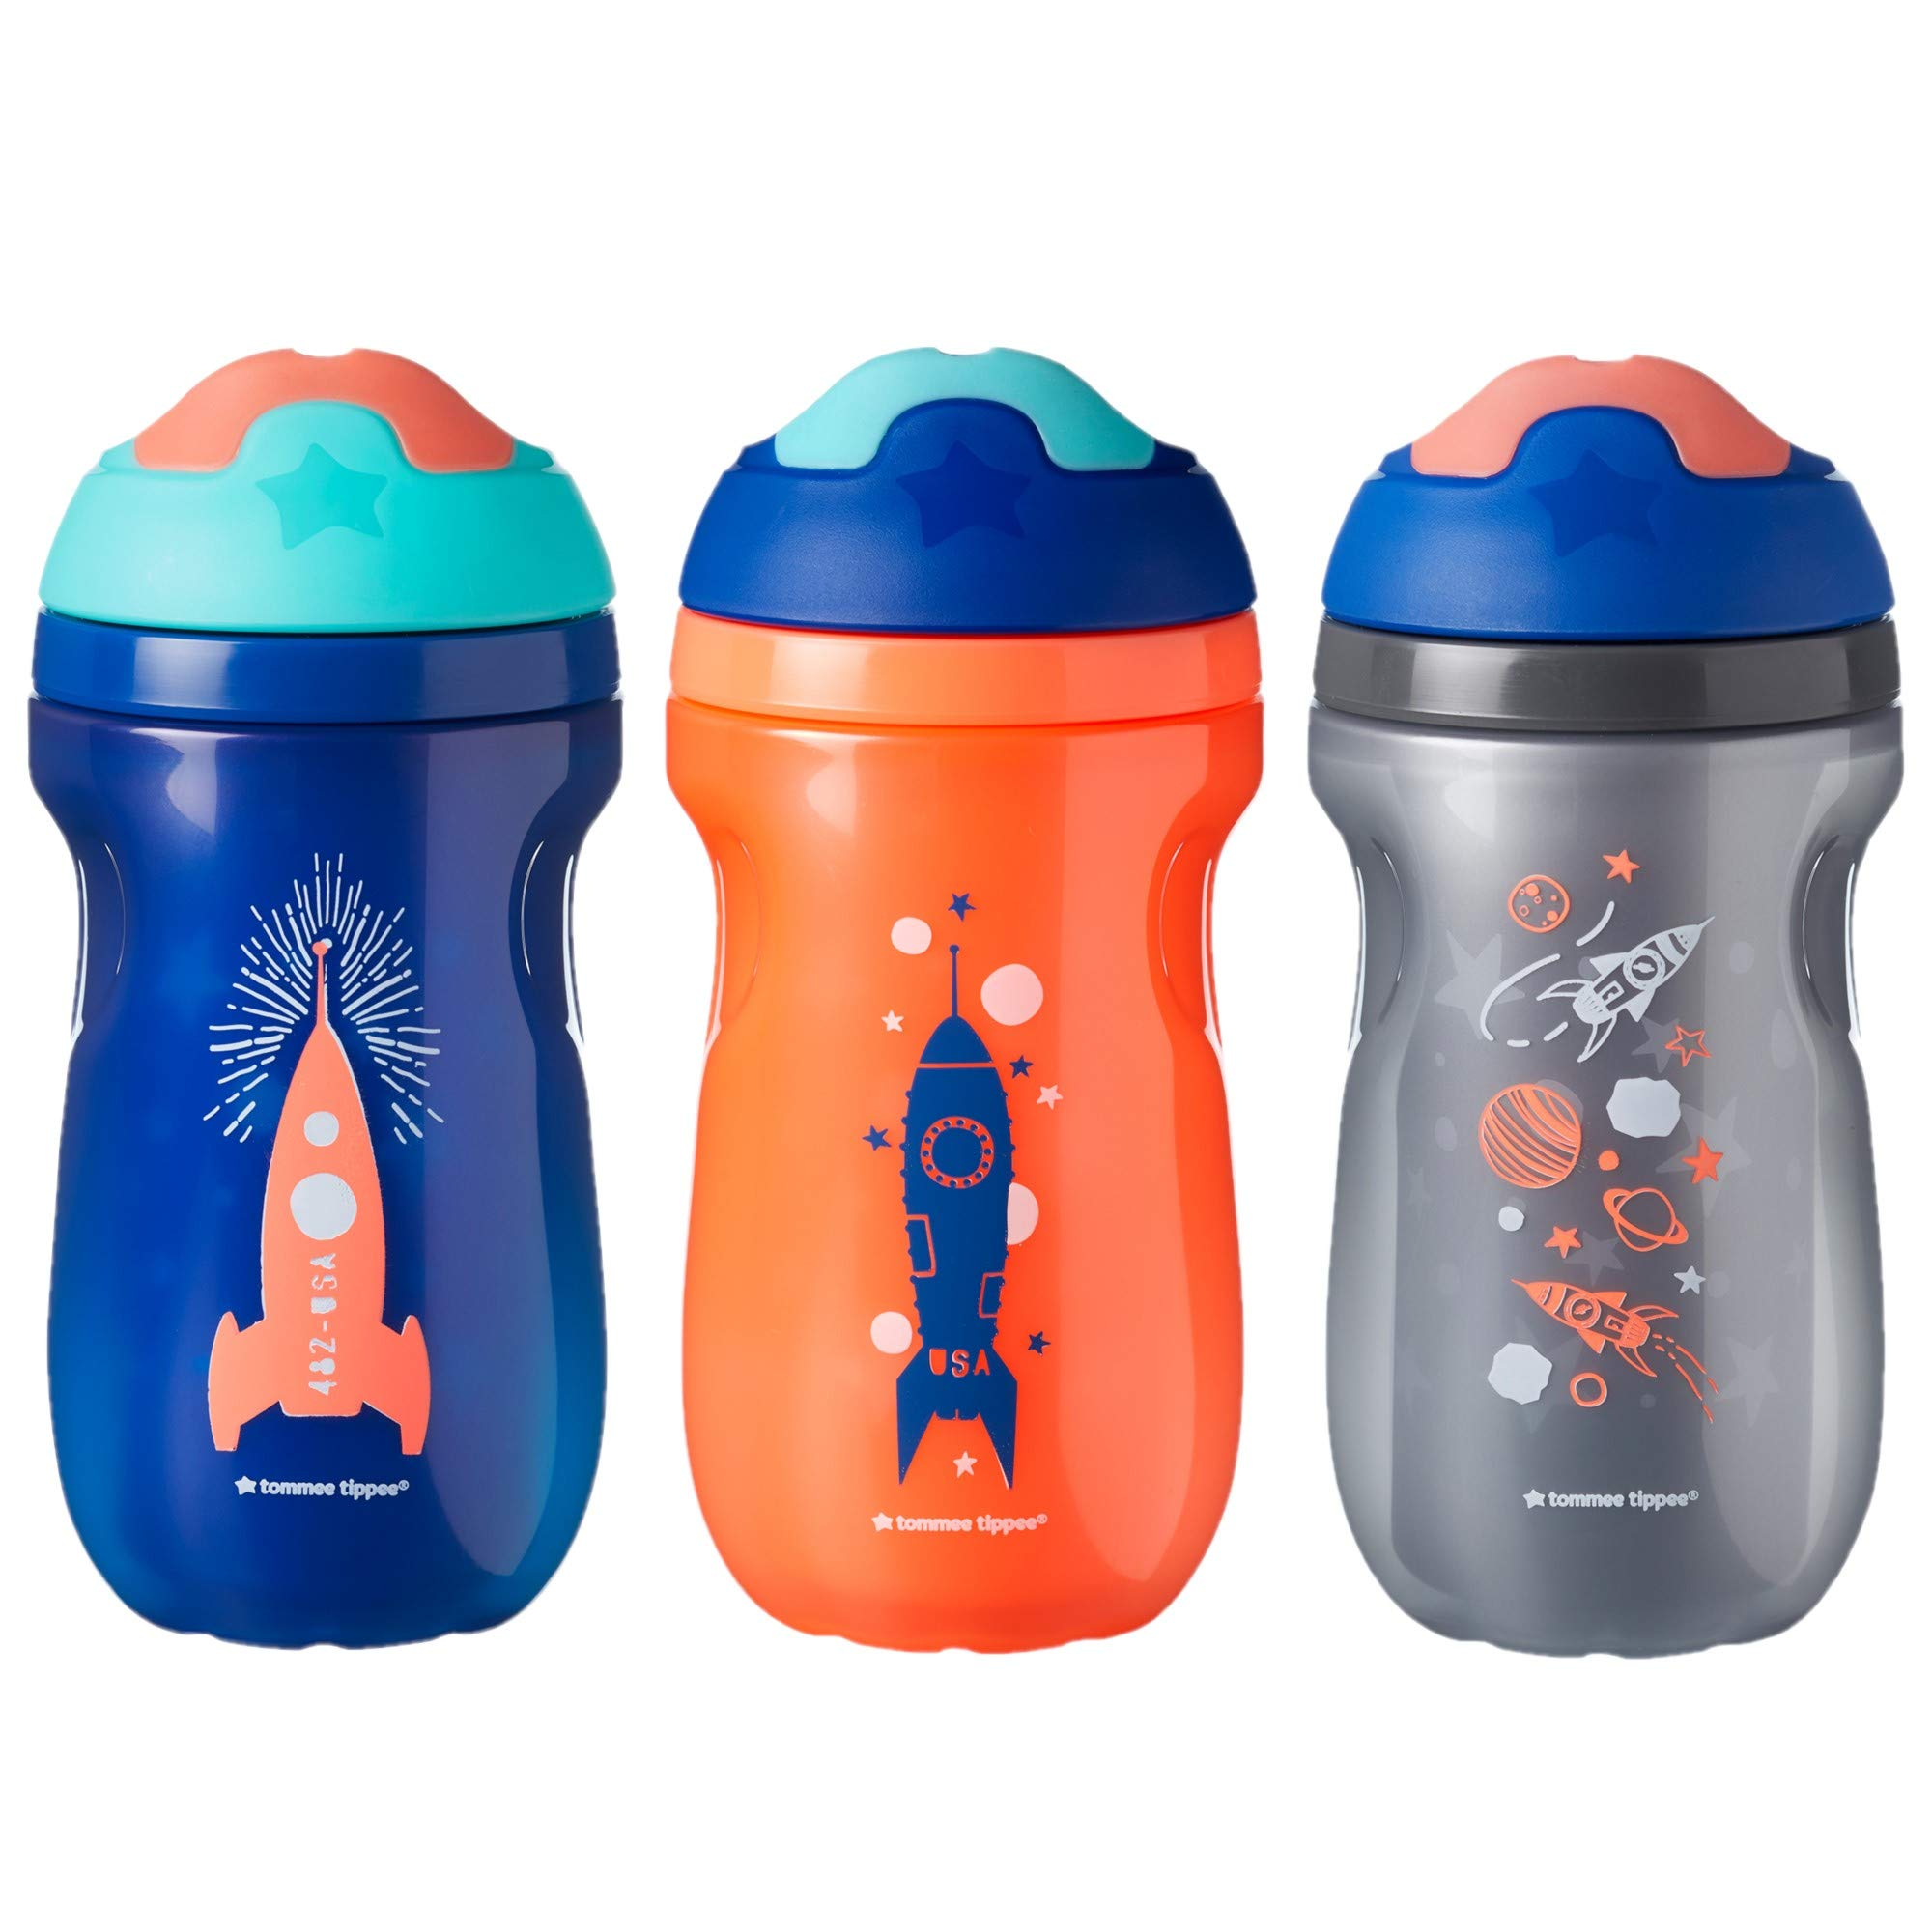 Tommee Tippee Non-Spill Insulated Sippee Toddler Tumbler Cup, 12+ Months, 9 Ounce, 3 Count, Boy by Tommee Tippee